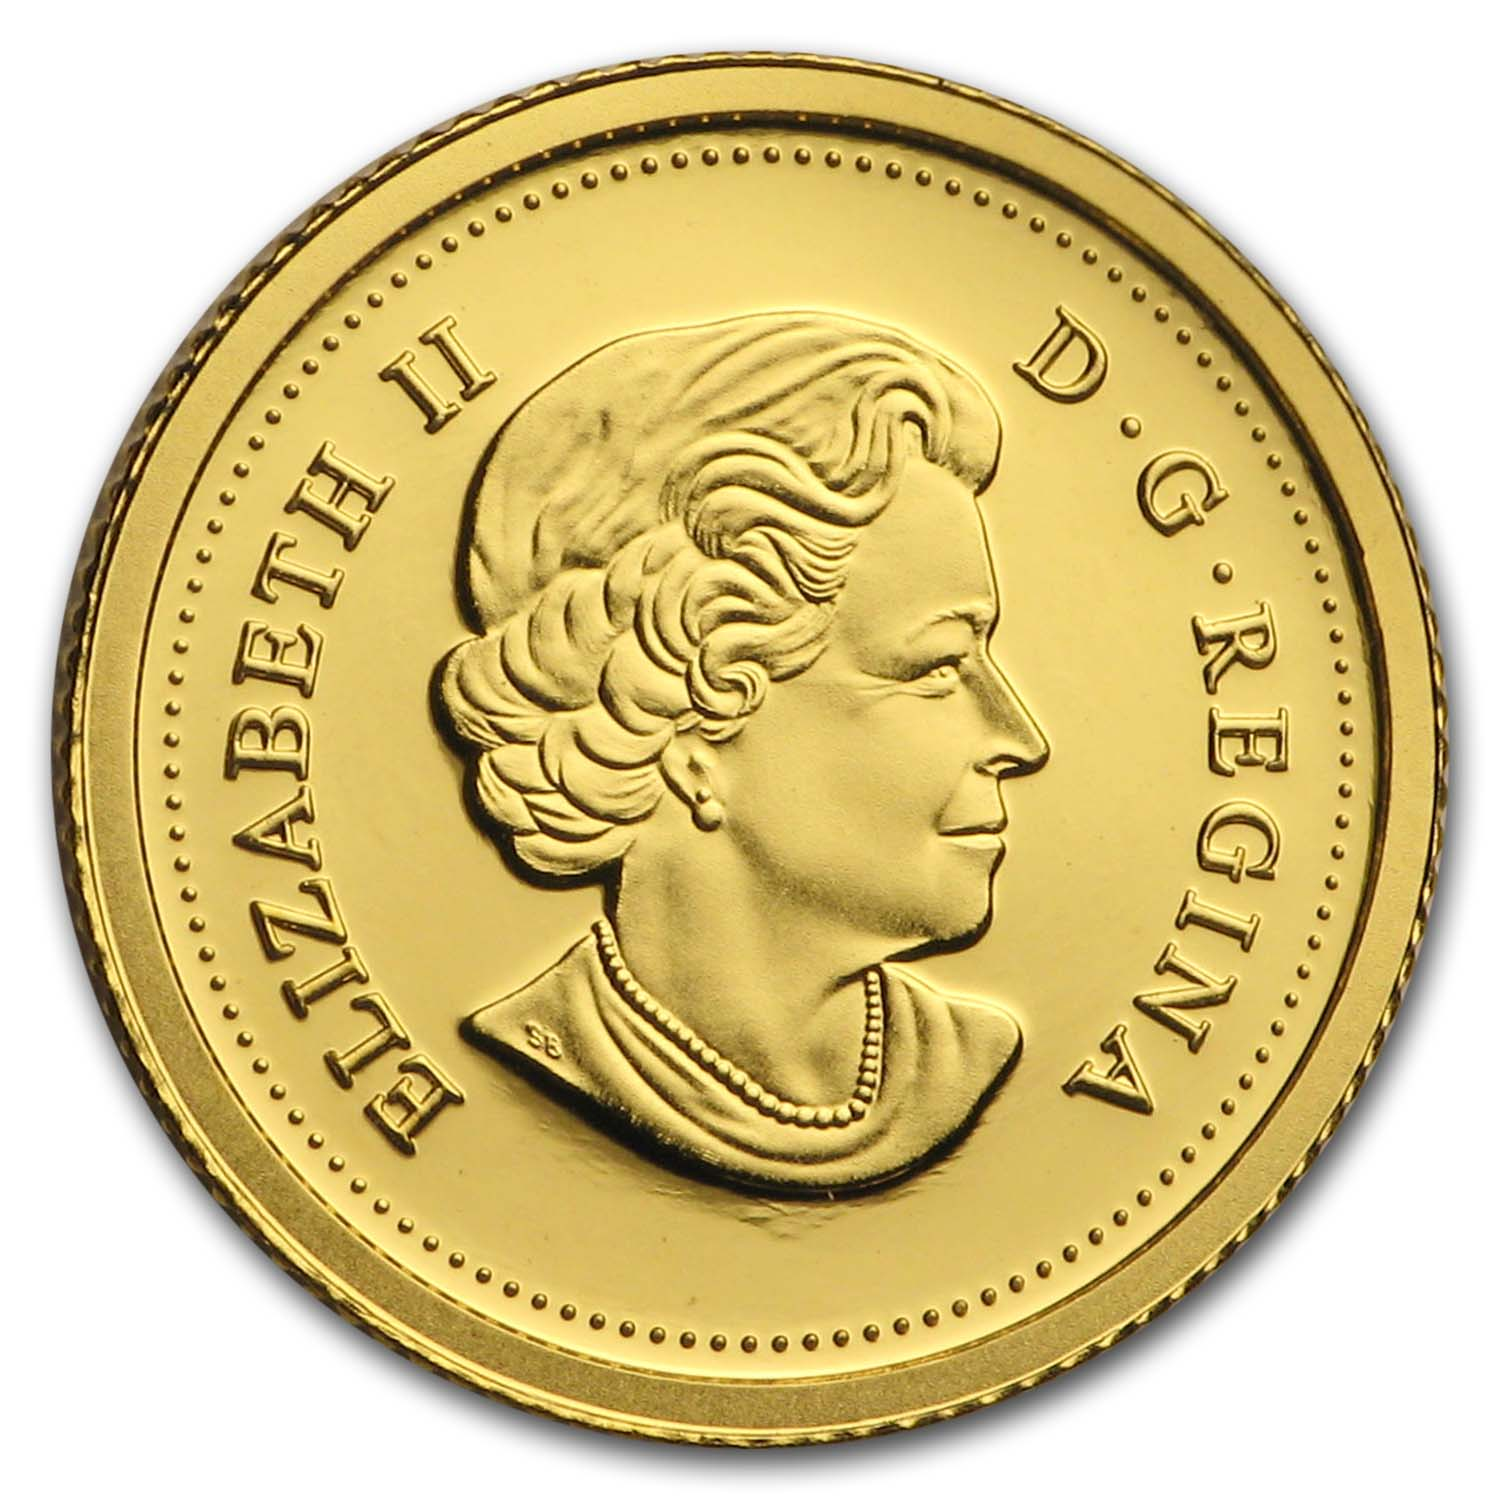 2012 1/25 oz Gold Canadian Coin - Farewell to the Penny